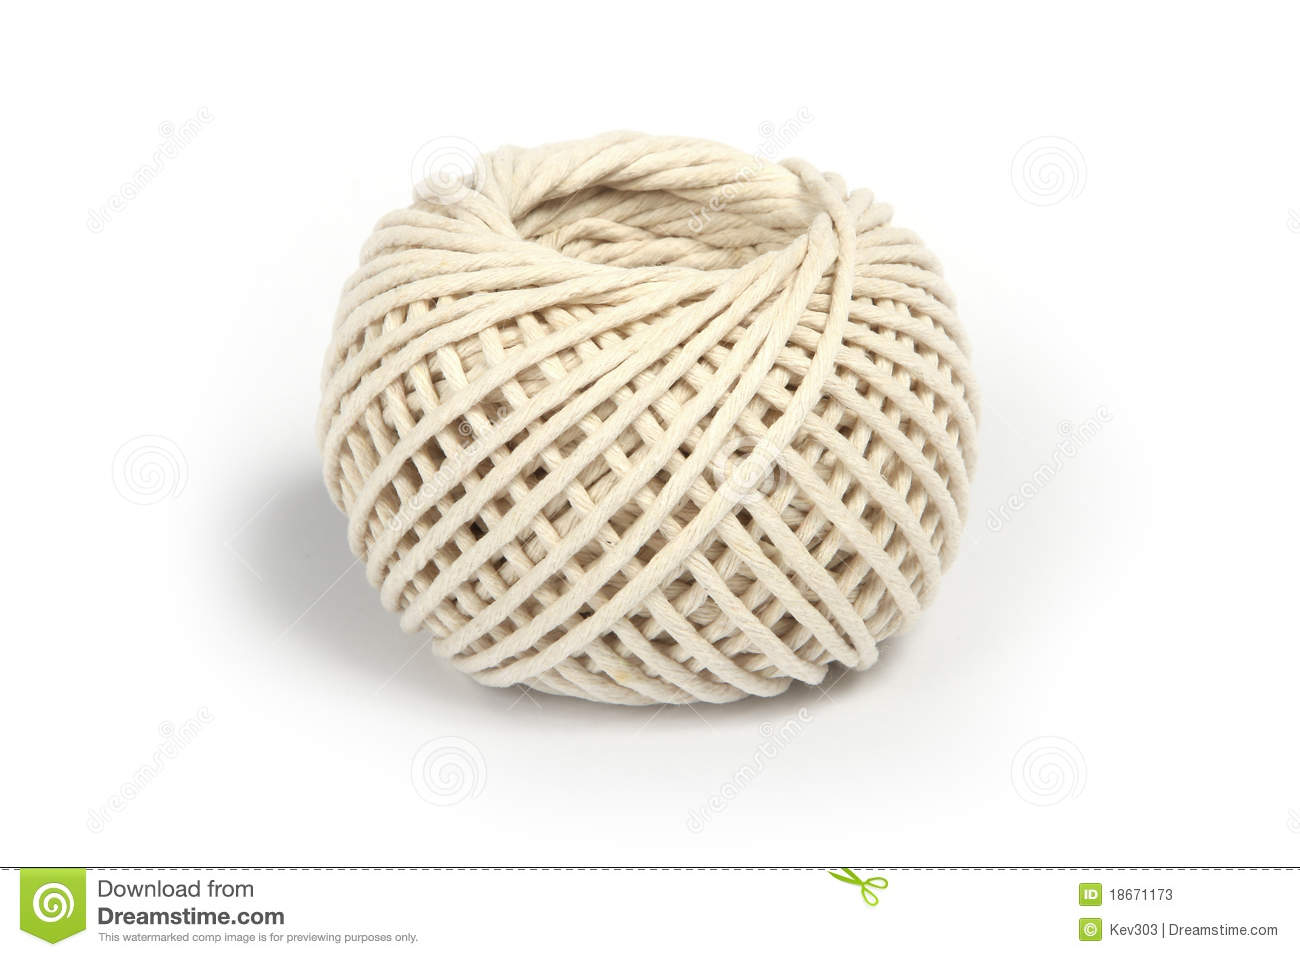 Ball Of Twine Or String Stock Image Image Of Wound